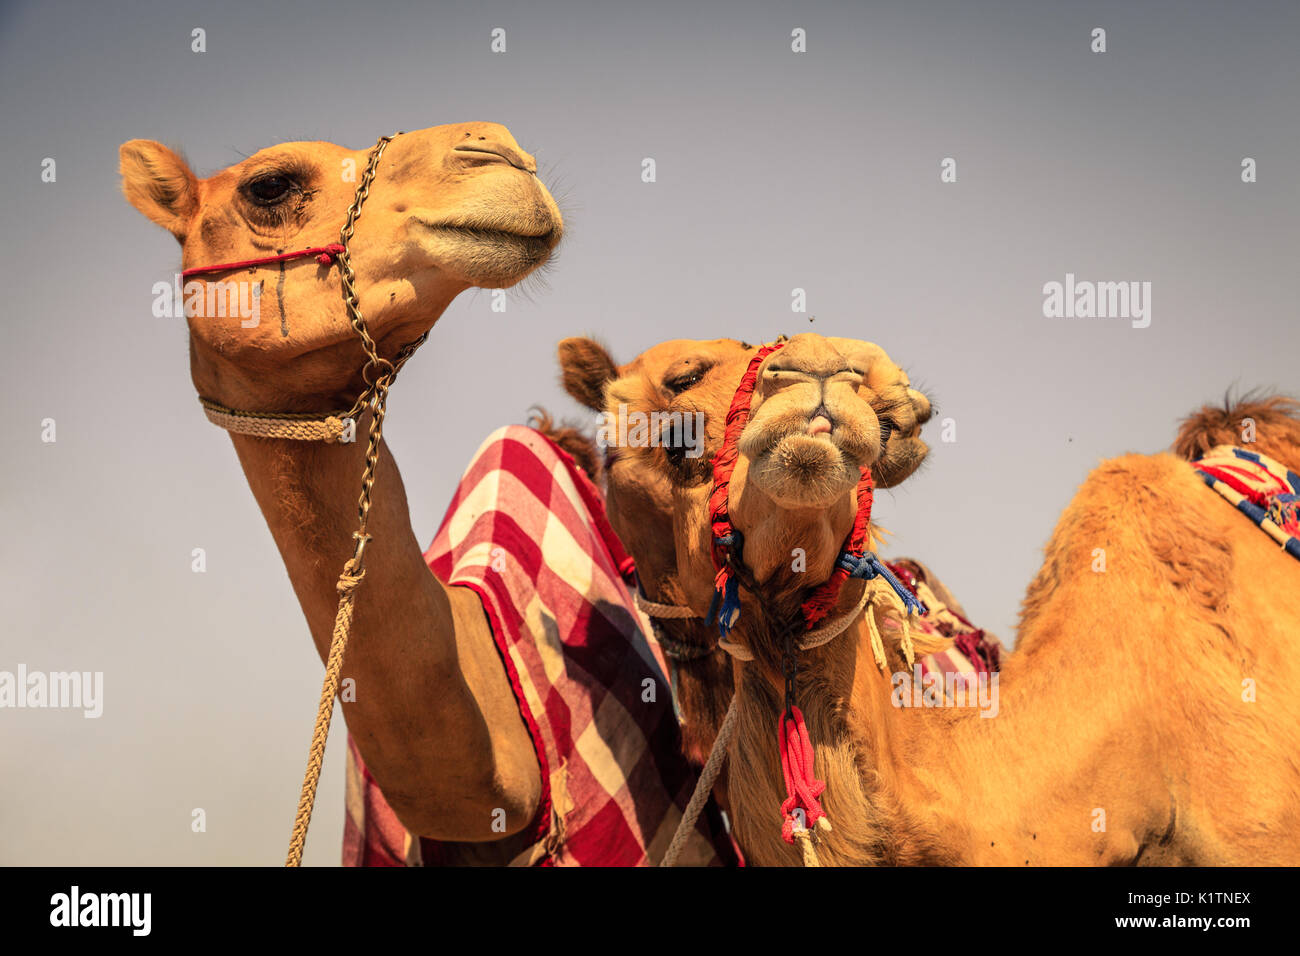 Racing camels at Dubai Camel Racing Club, UAE - Stock Image